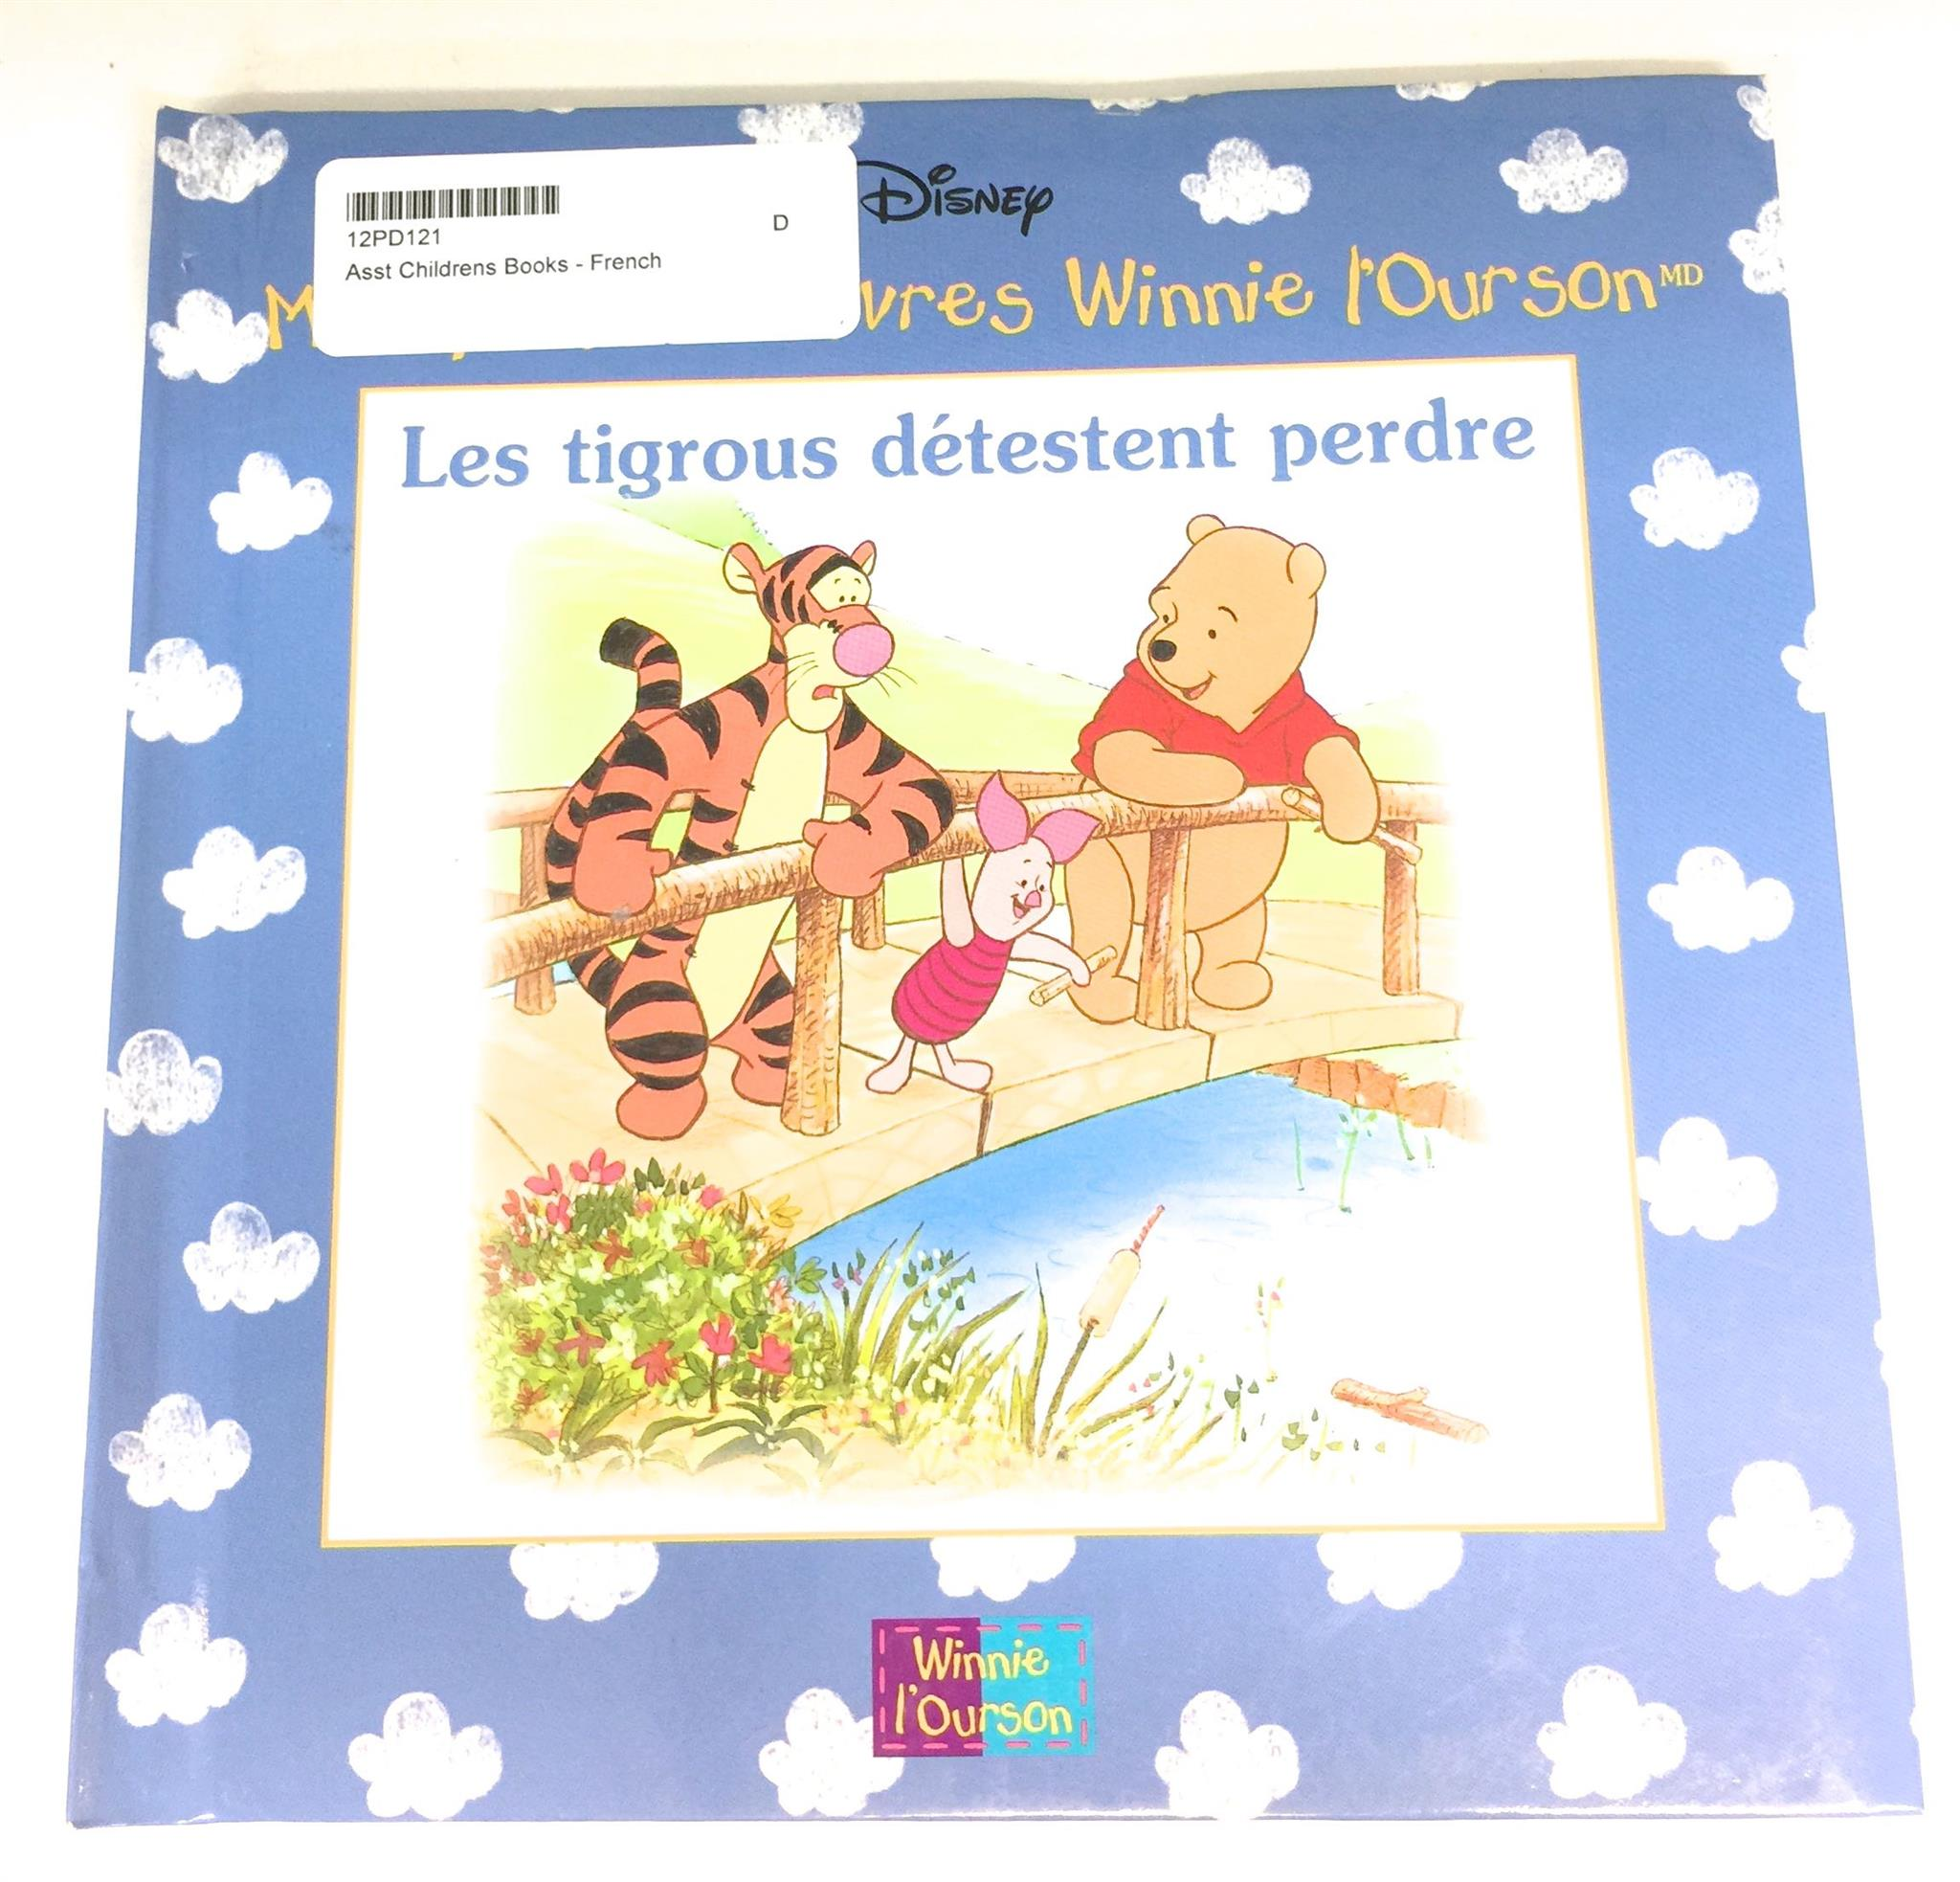 Asst Childrens Books - French